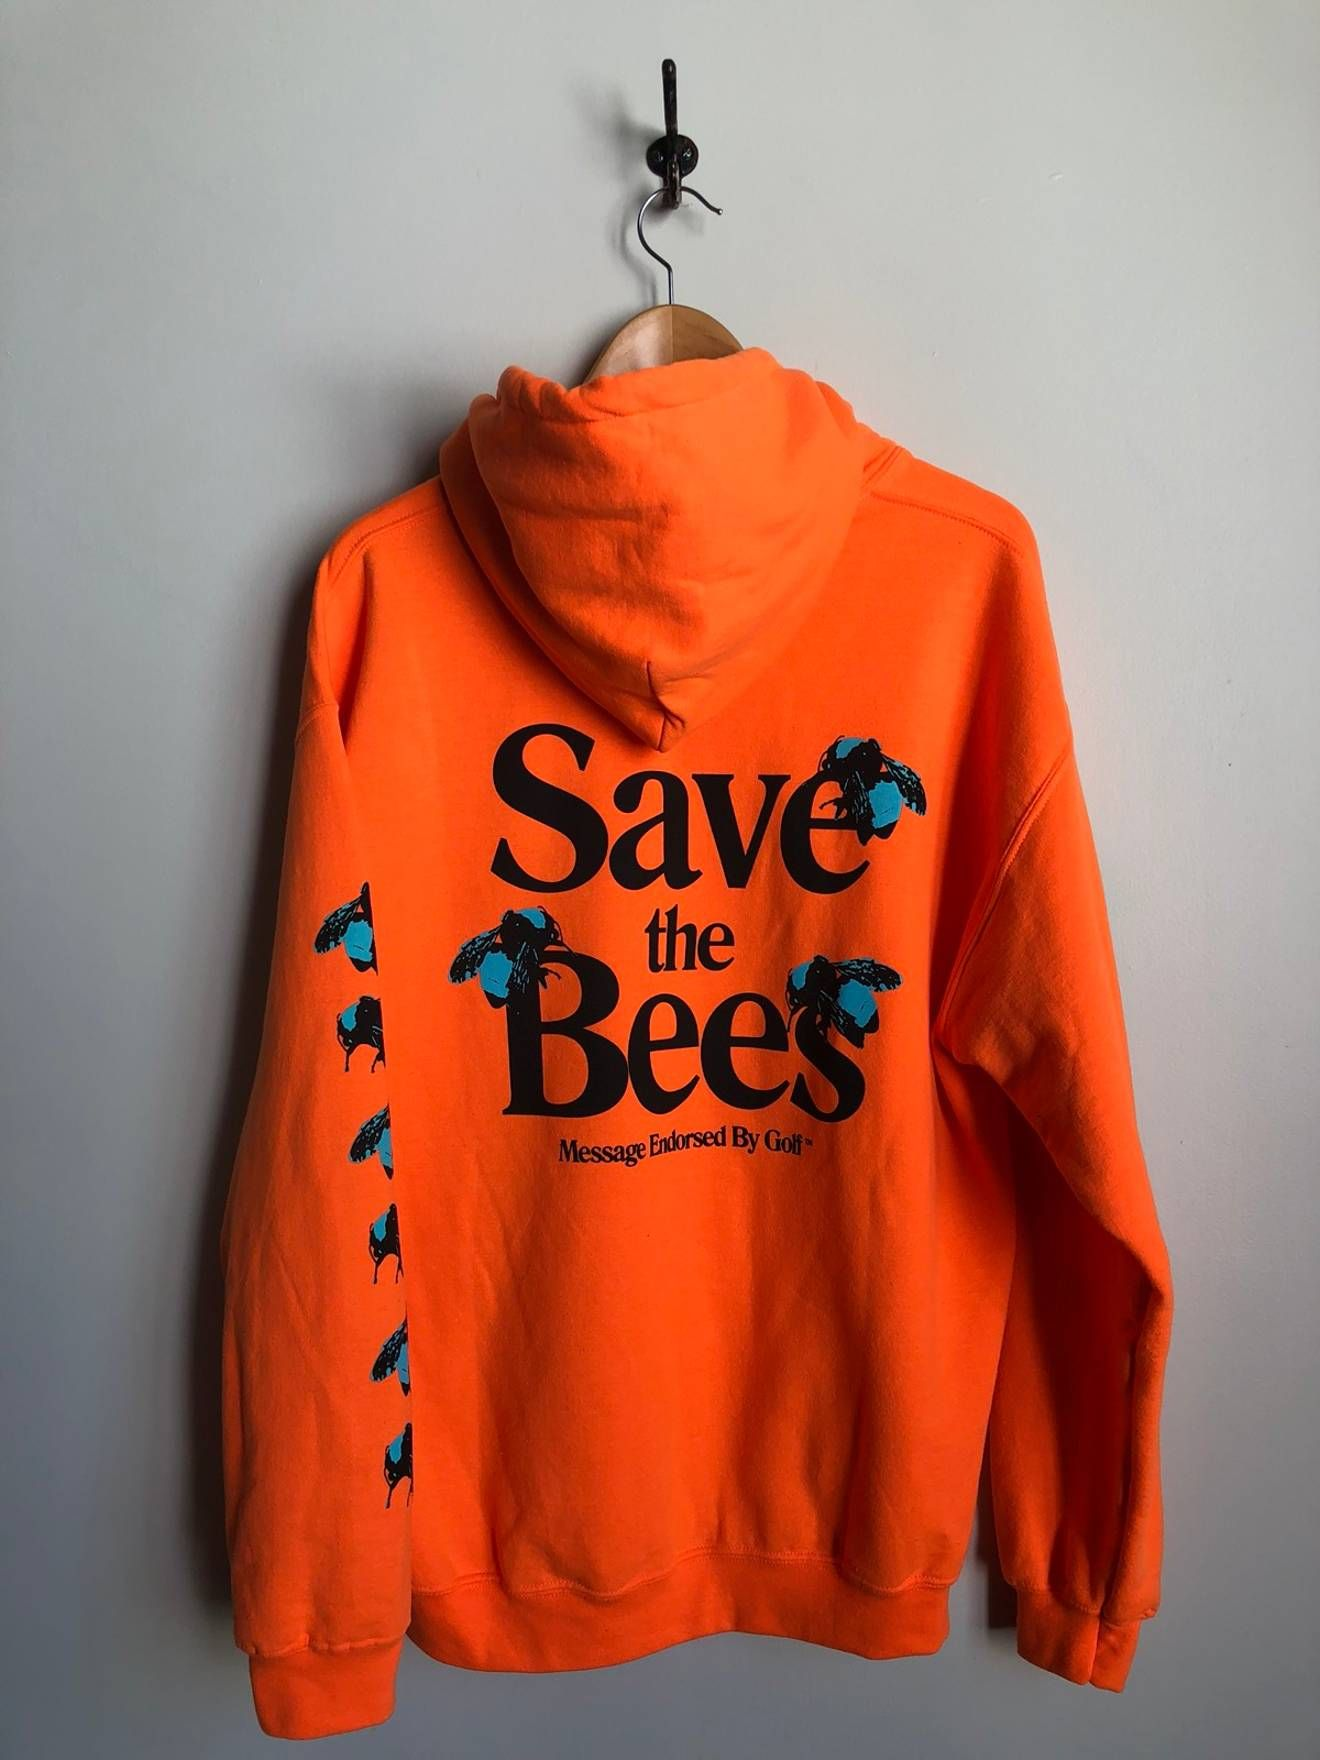 aec8a4a47f00 Golf Wang Save The Bees Hoodie Size US L   EU 52-54   3 - 1